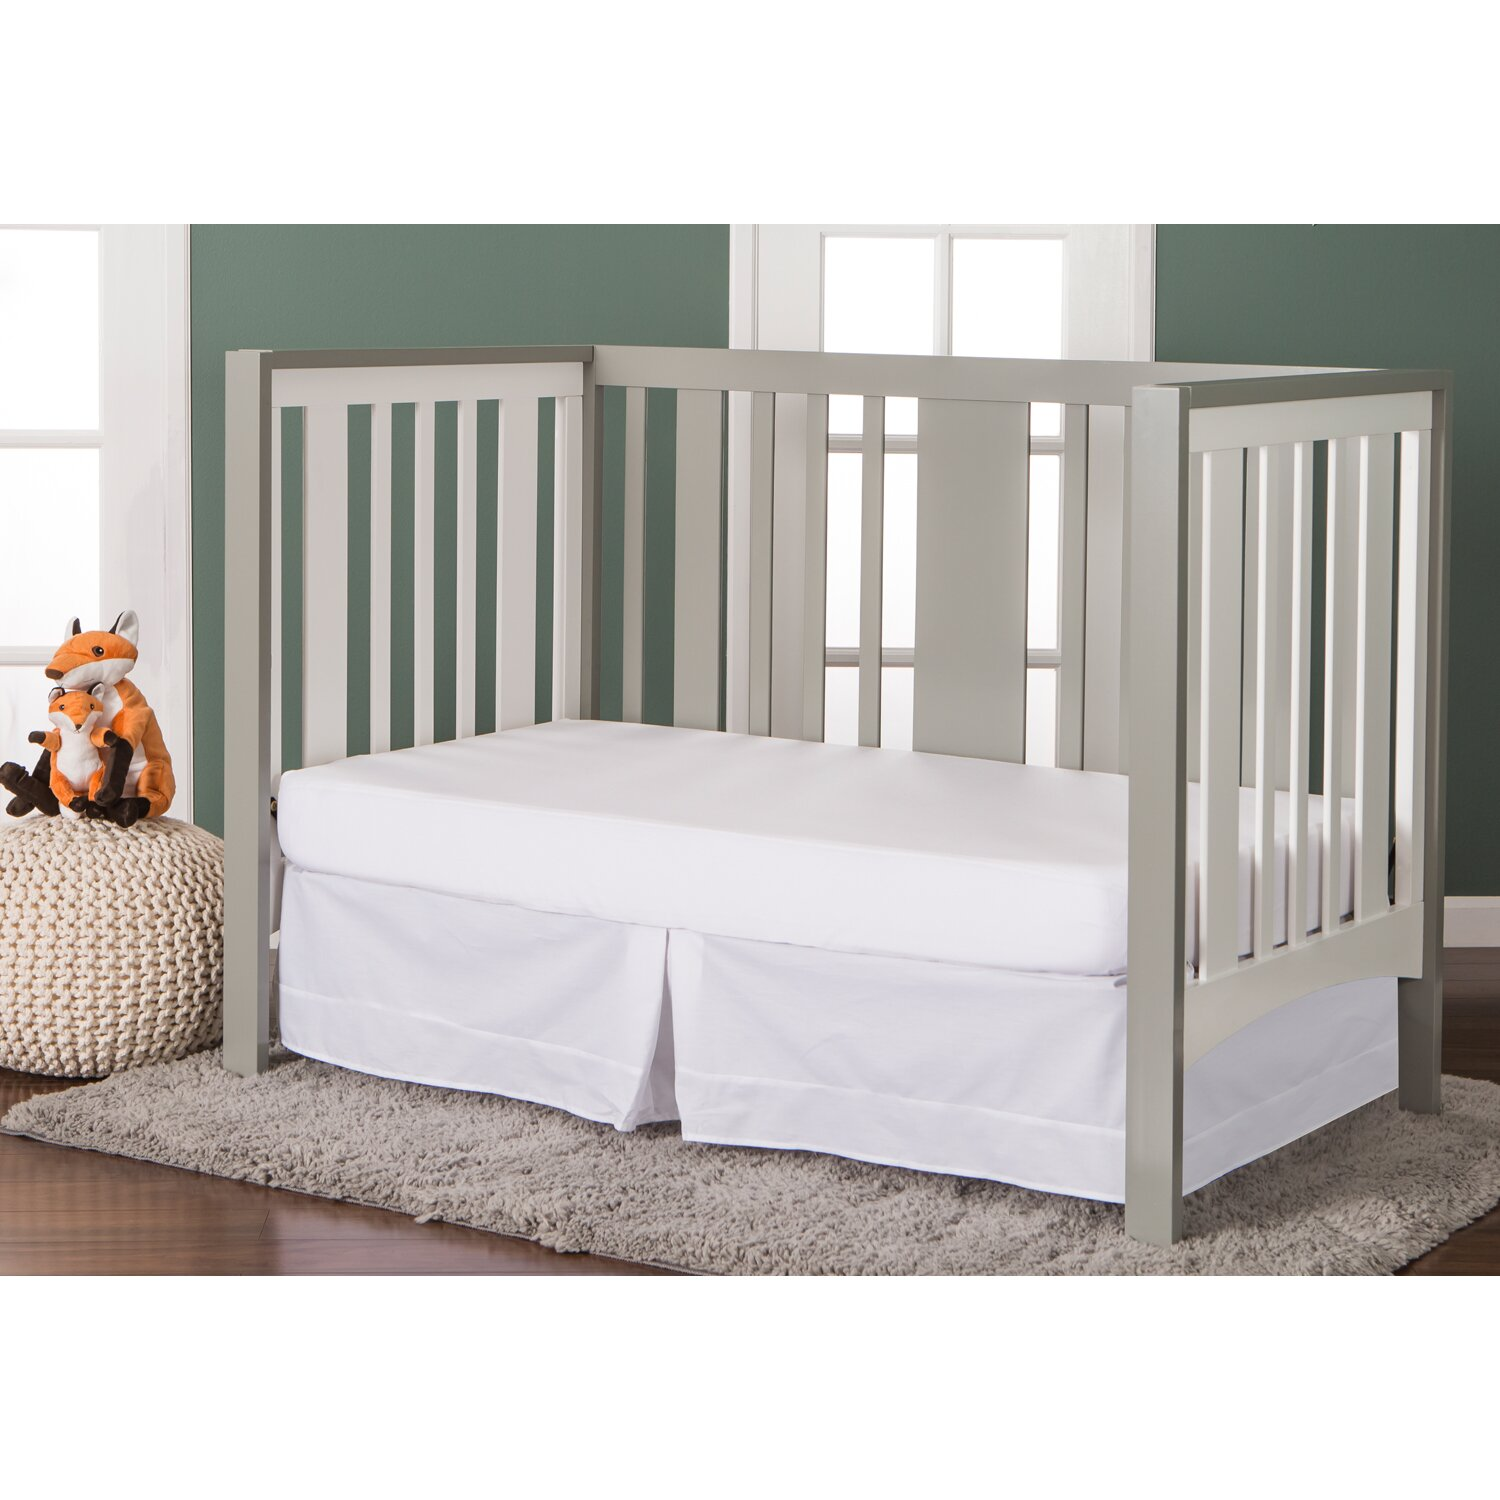 Used crib for sale edmonton - Dream On Me Havana 5 In 1 Convertible Crib